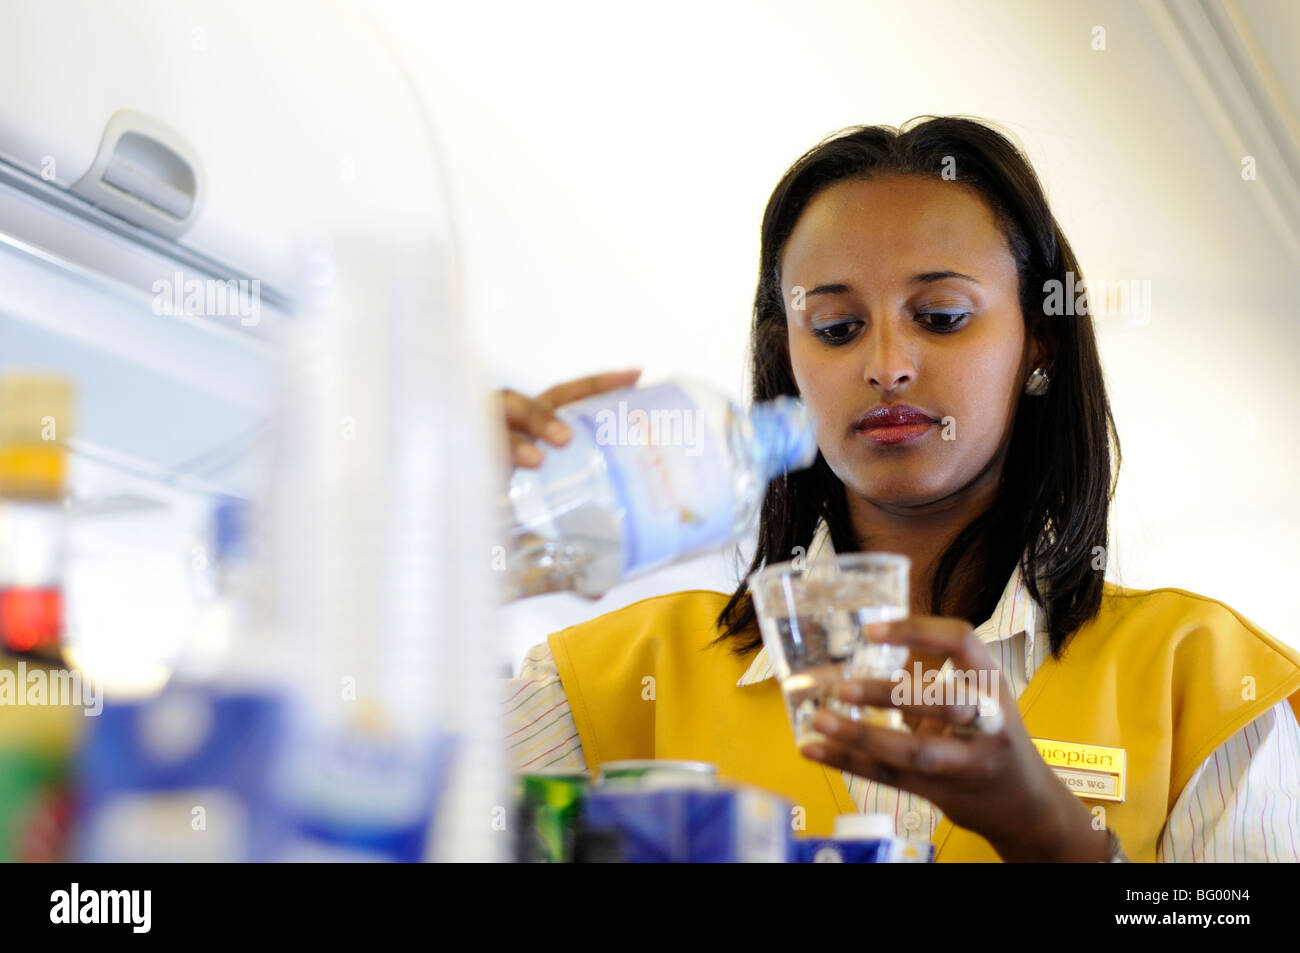 Ethiopian Airlines Air Hostess - Stock Image